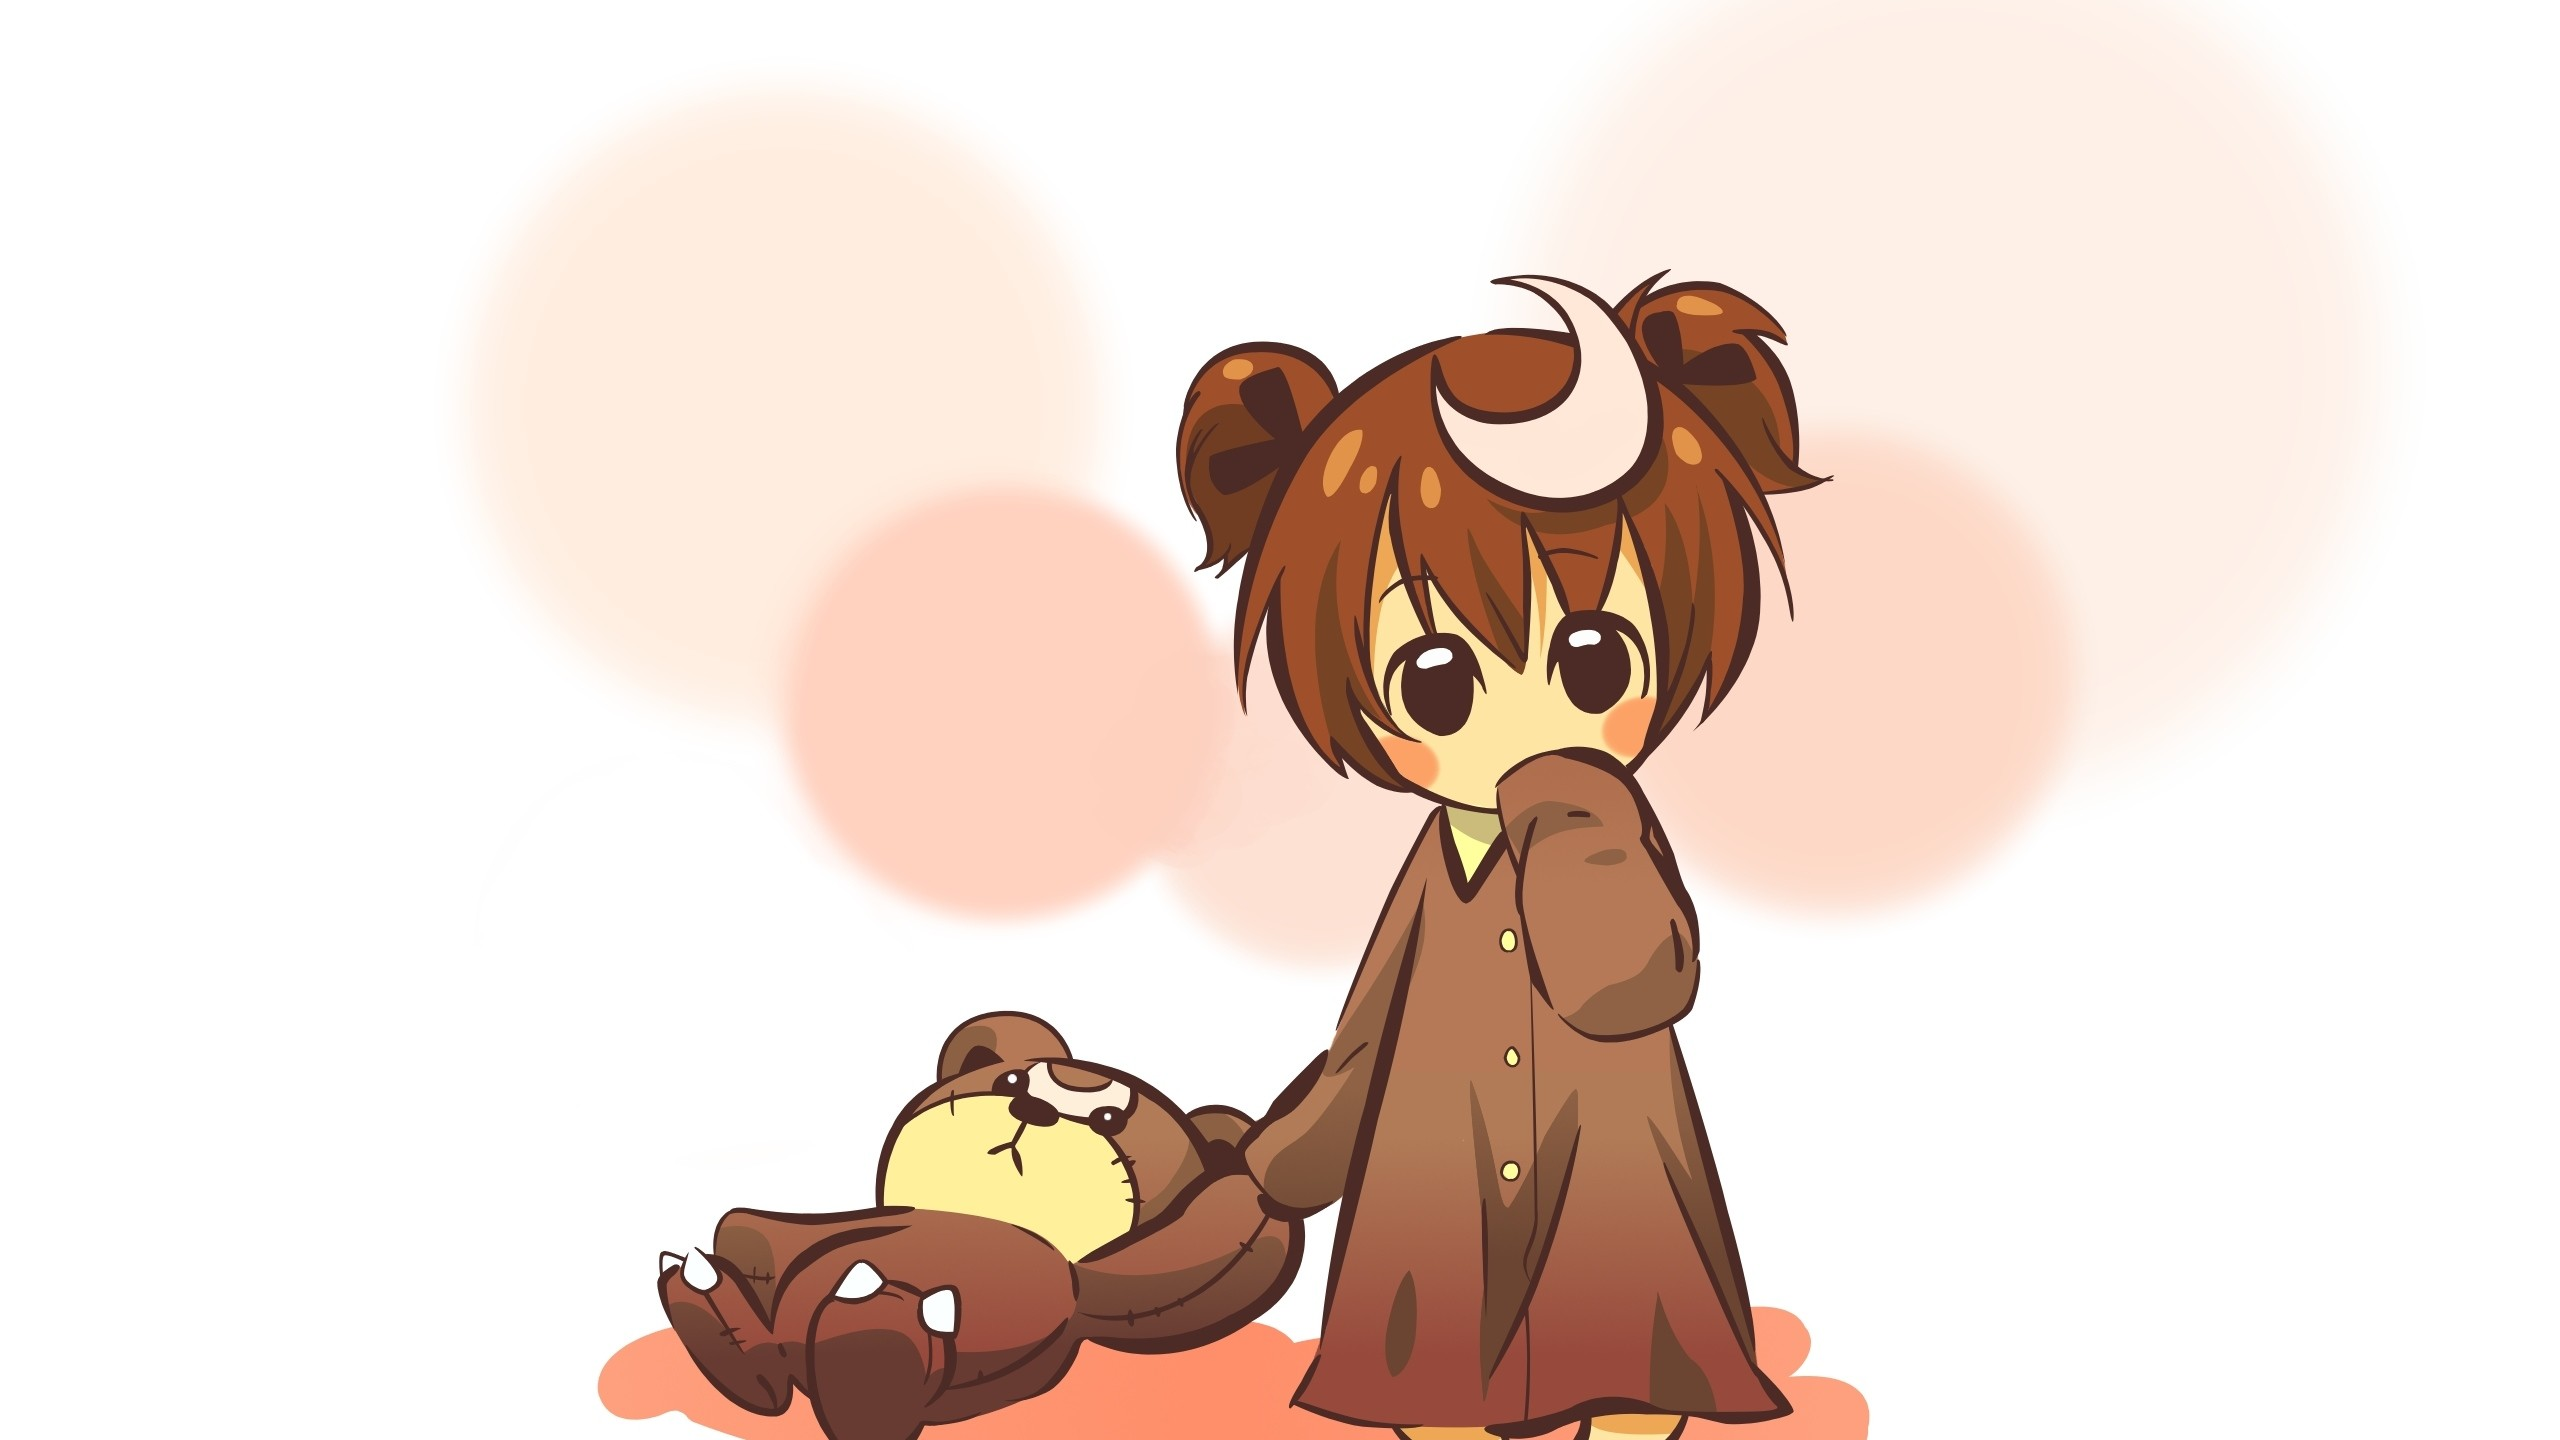 2560x1440  Wallpaper anime, girl, cute, toy, bear, background